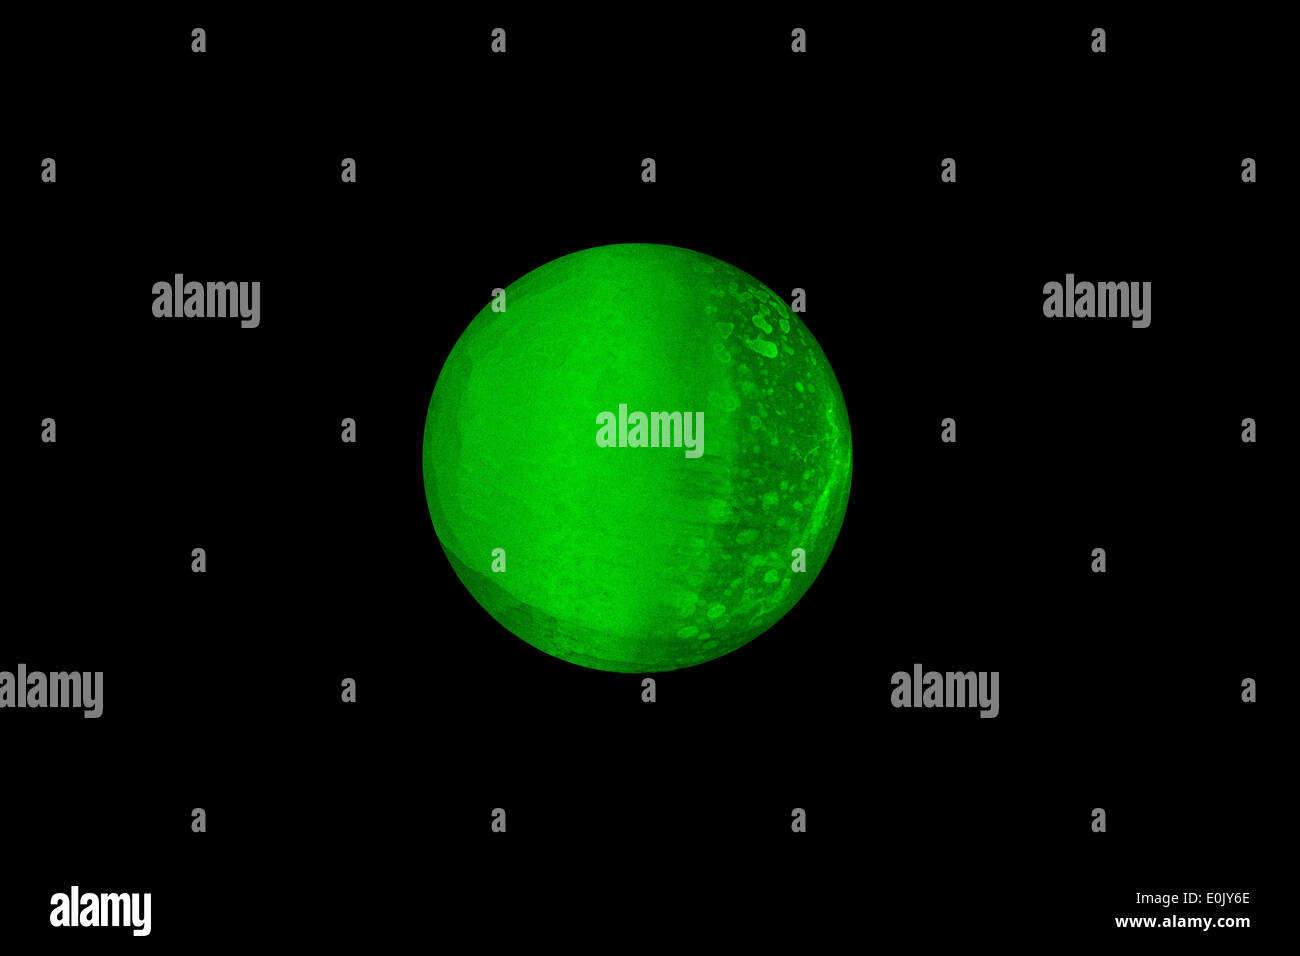 illumination of a selenite ball with green laser light - Stock Image